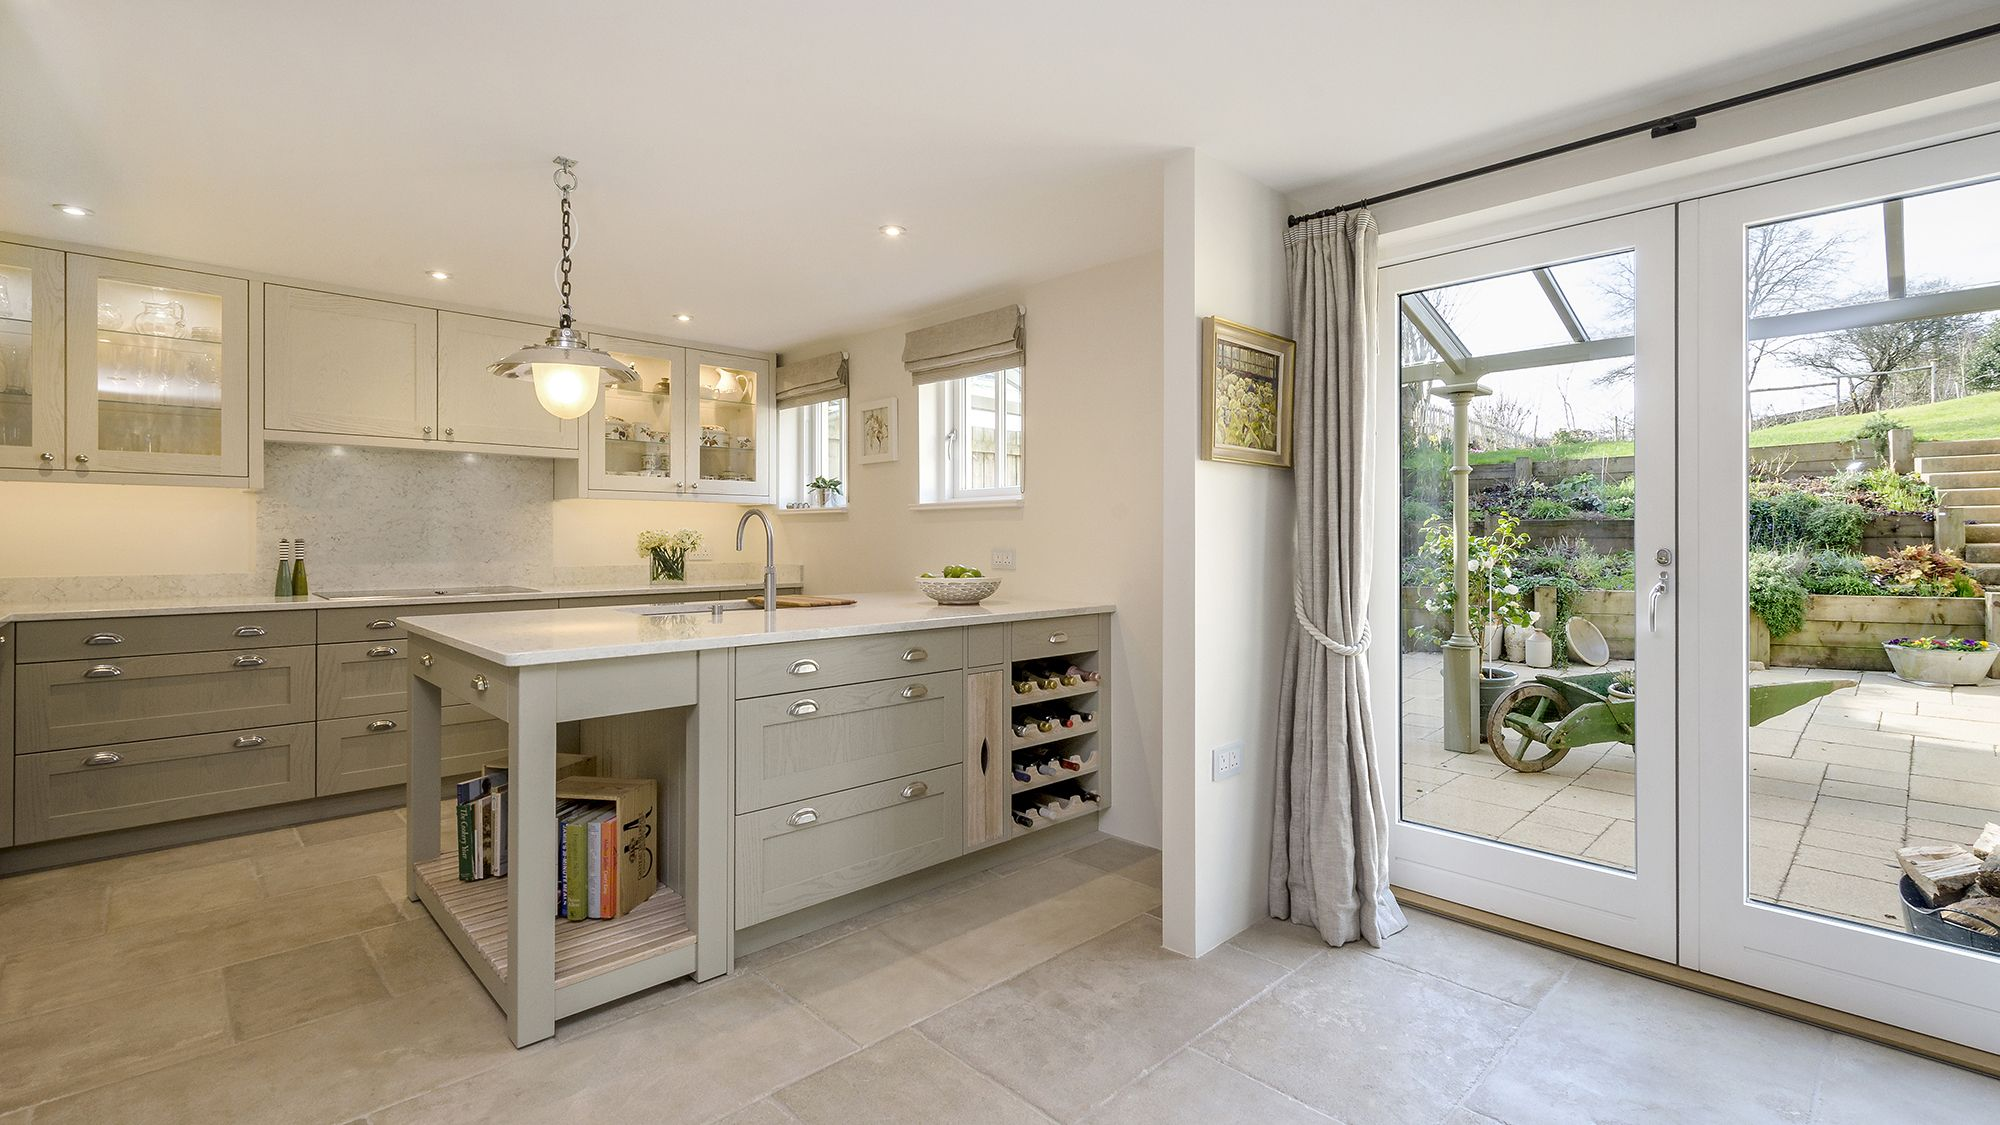 solid painted ash kitchen with silestone 'blanco orion' worktops